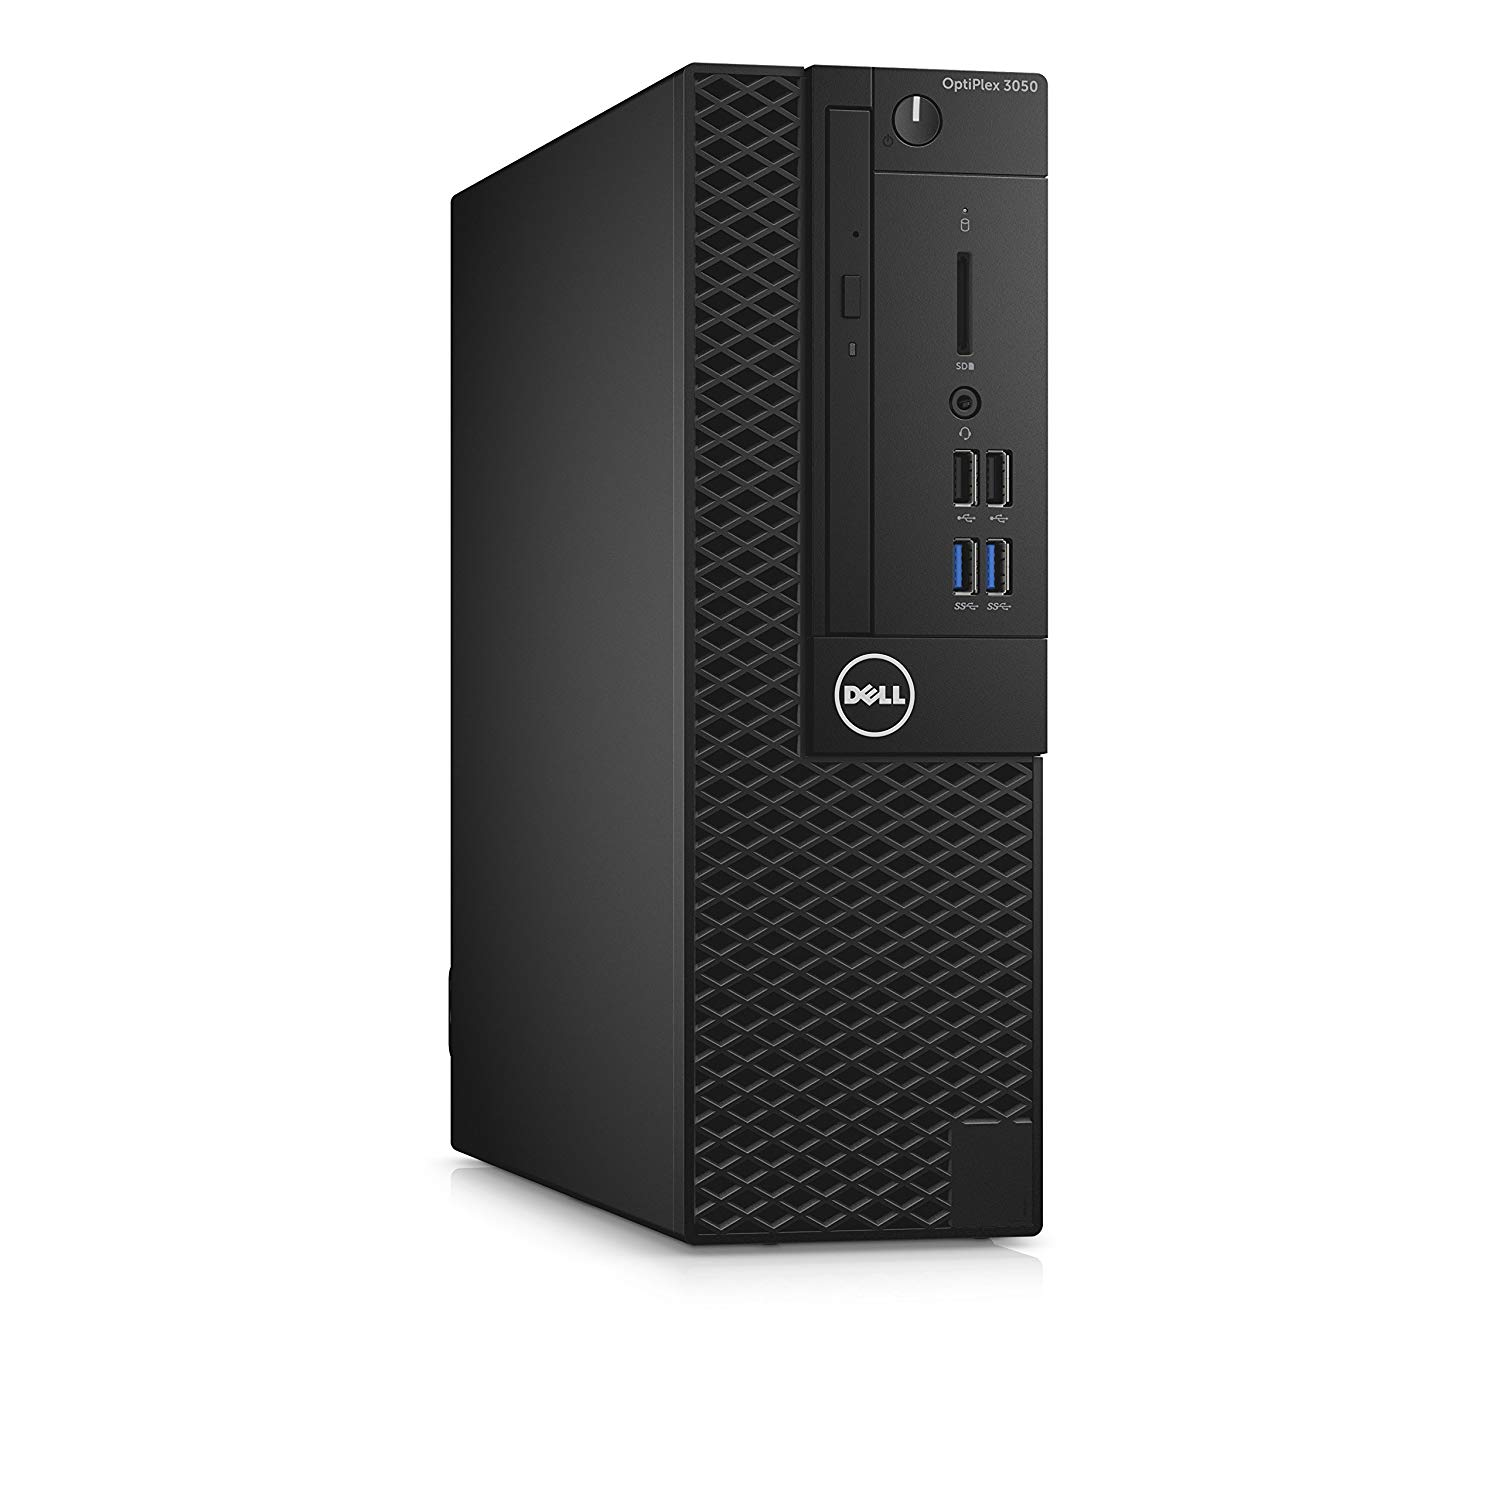 Dell OptiPlex 3050 Tower Core i5-7500 3.4GHz RAM 8GB HDD 500GB